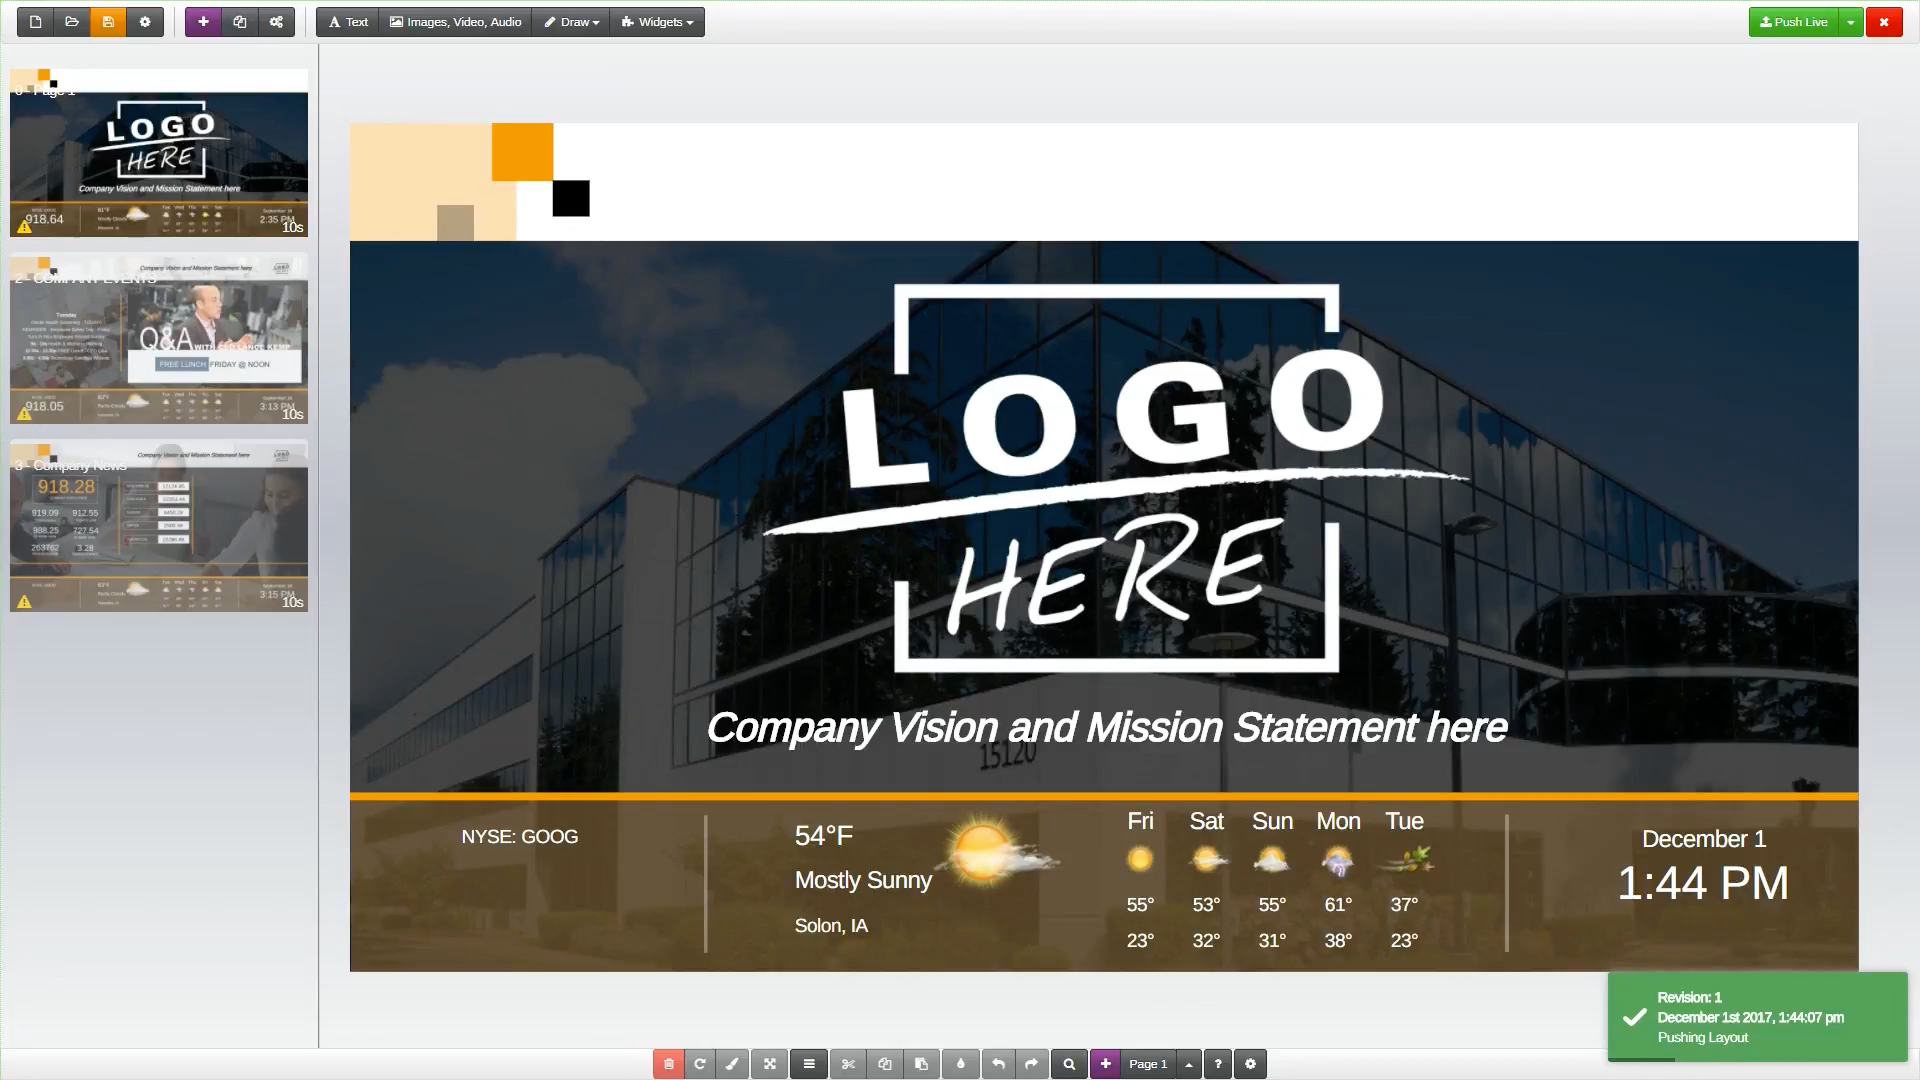 Presentations can be edited using the WYSIWYG editor and drag & drop interface which allows users to add images, video, audio, widgets, and more